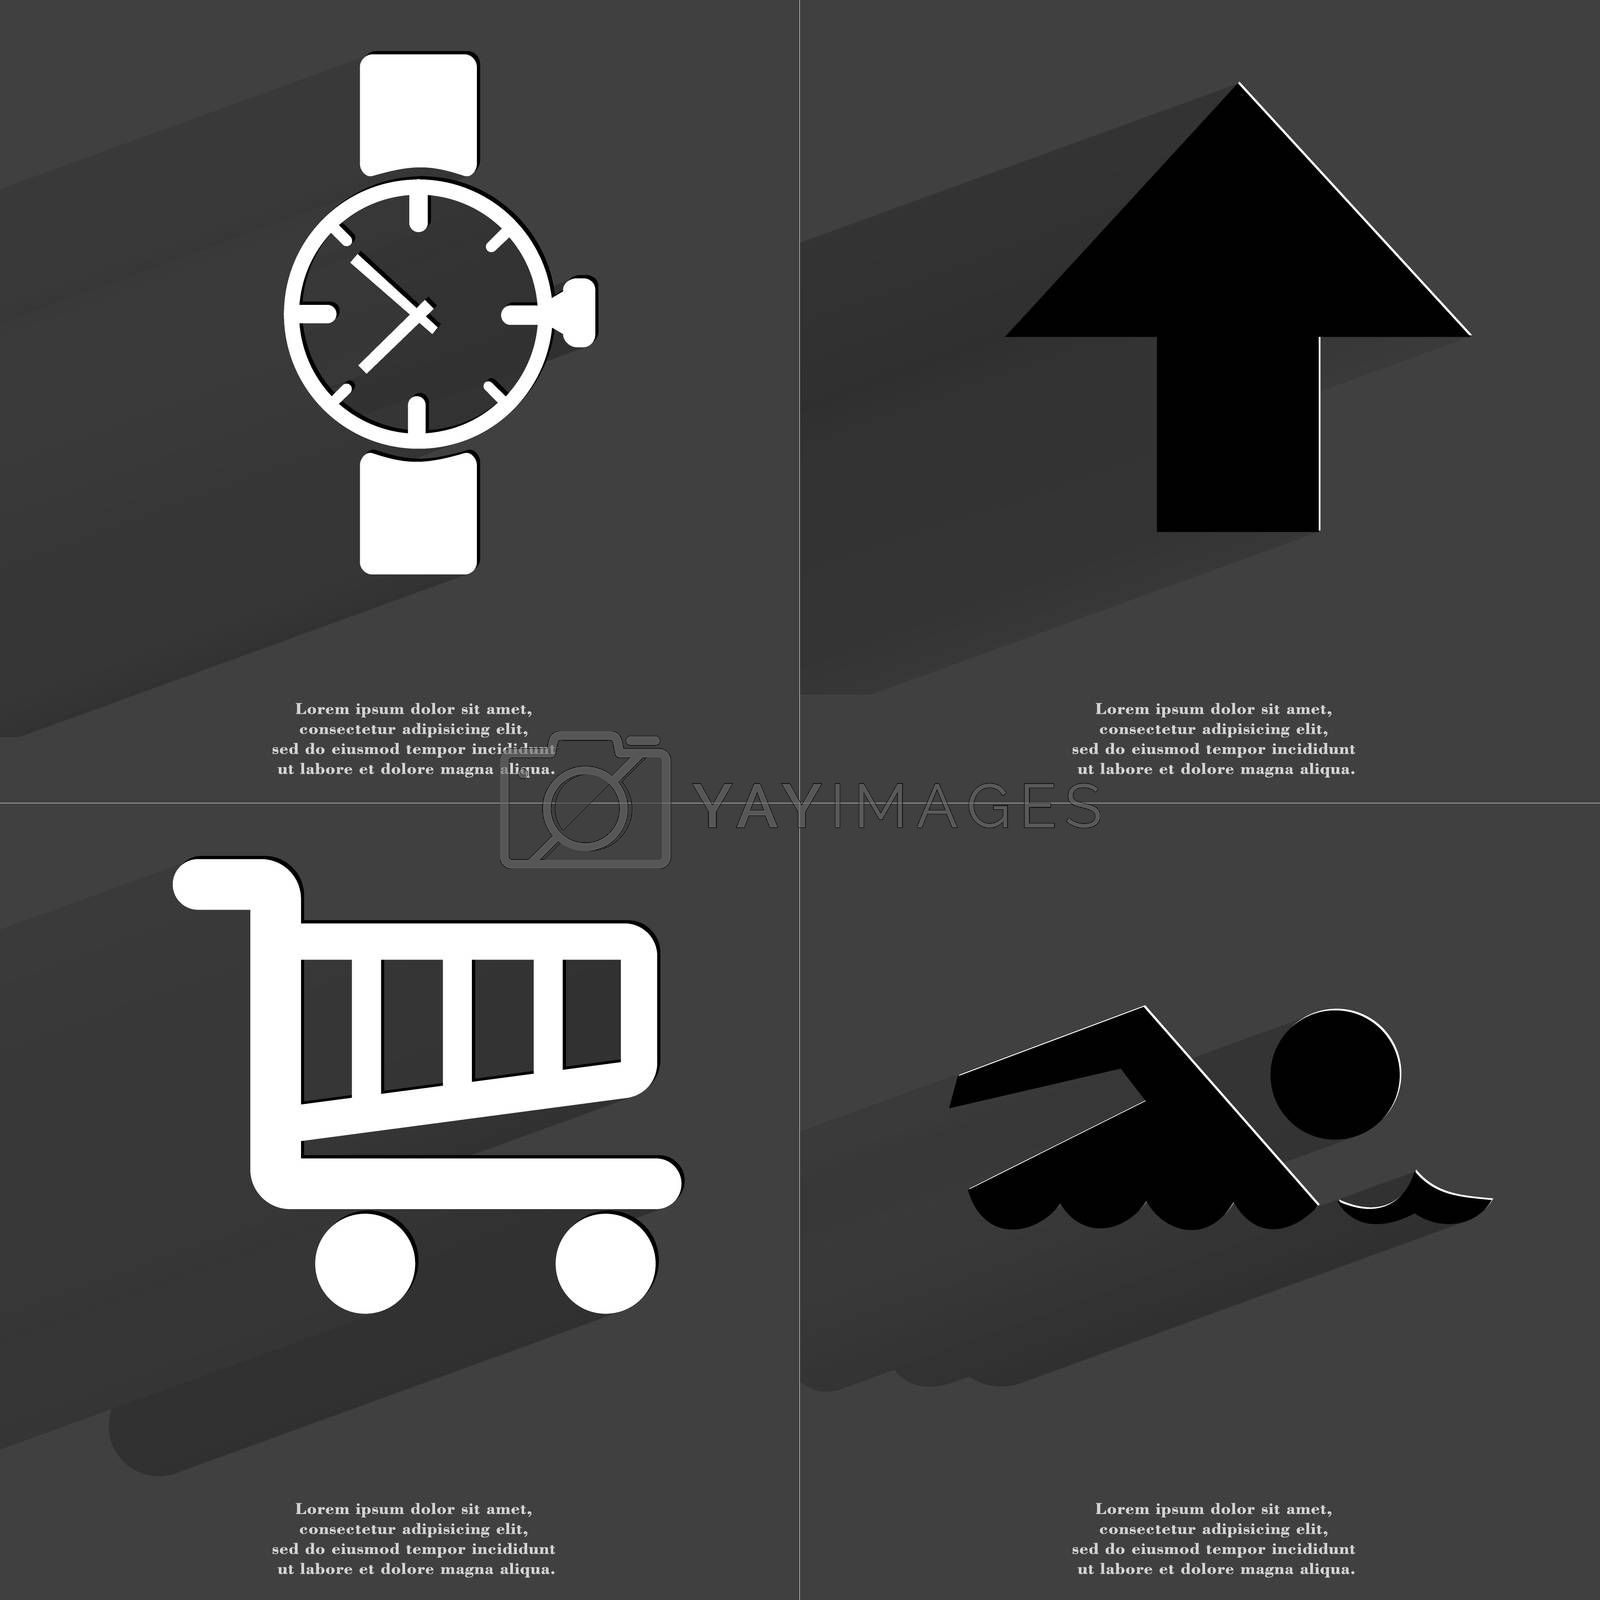 Royalty free image of Wrist clock, Arrow directed upwards, Shopping cart, Silhouette of swimmer. Symbols with long shadow. Flat design by serhii_lohvyniuk